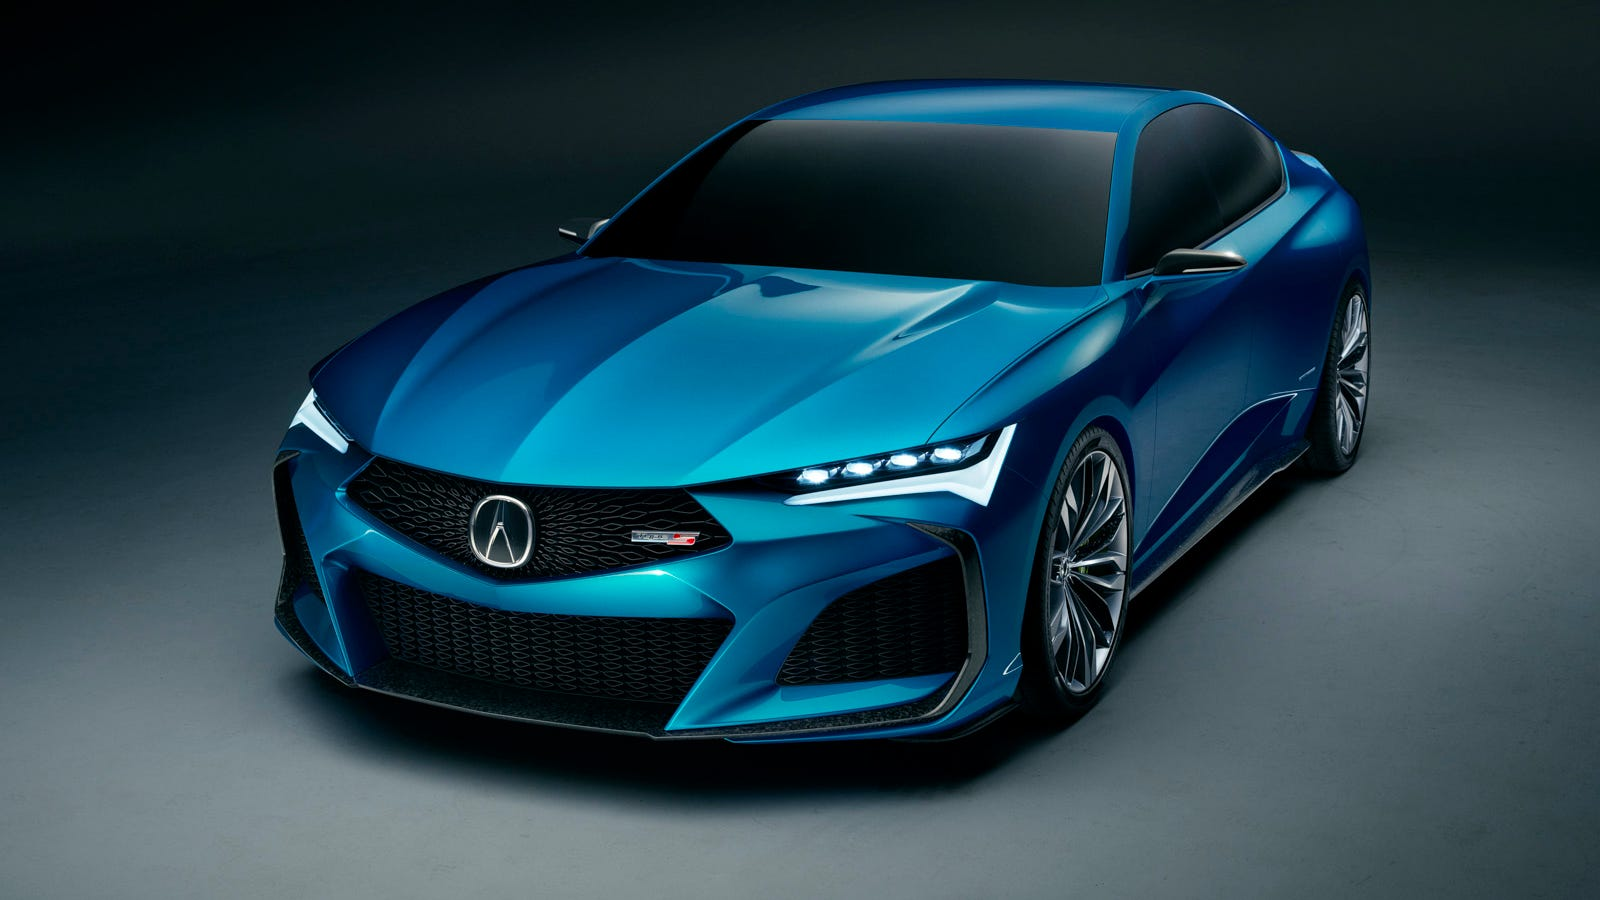 Progressive Near Me >> The New Acura Type S Concept Is Starting To Look Like The ...